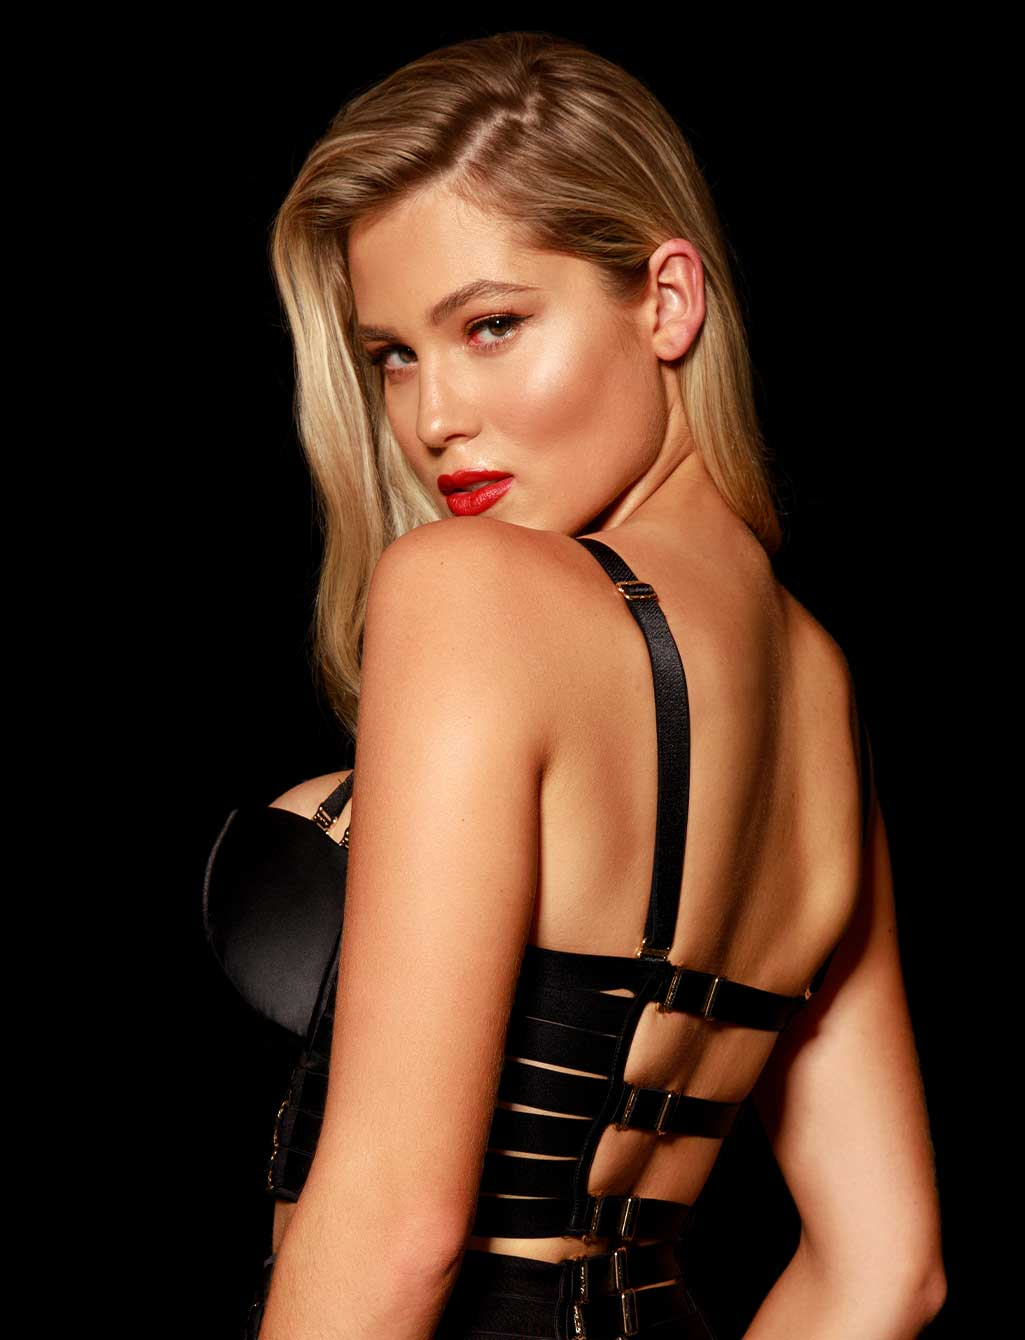 Stevie Black Push Up Bra | Shop  Lingerie Honey Birdette